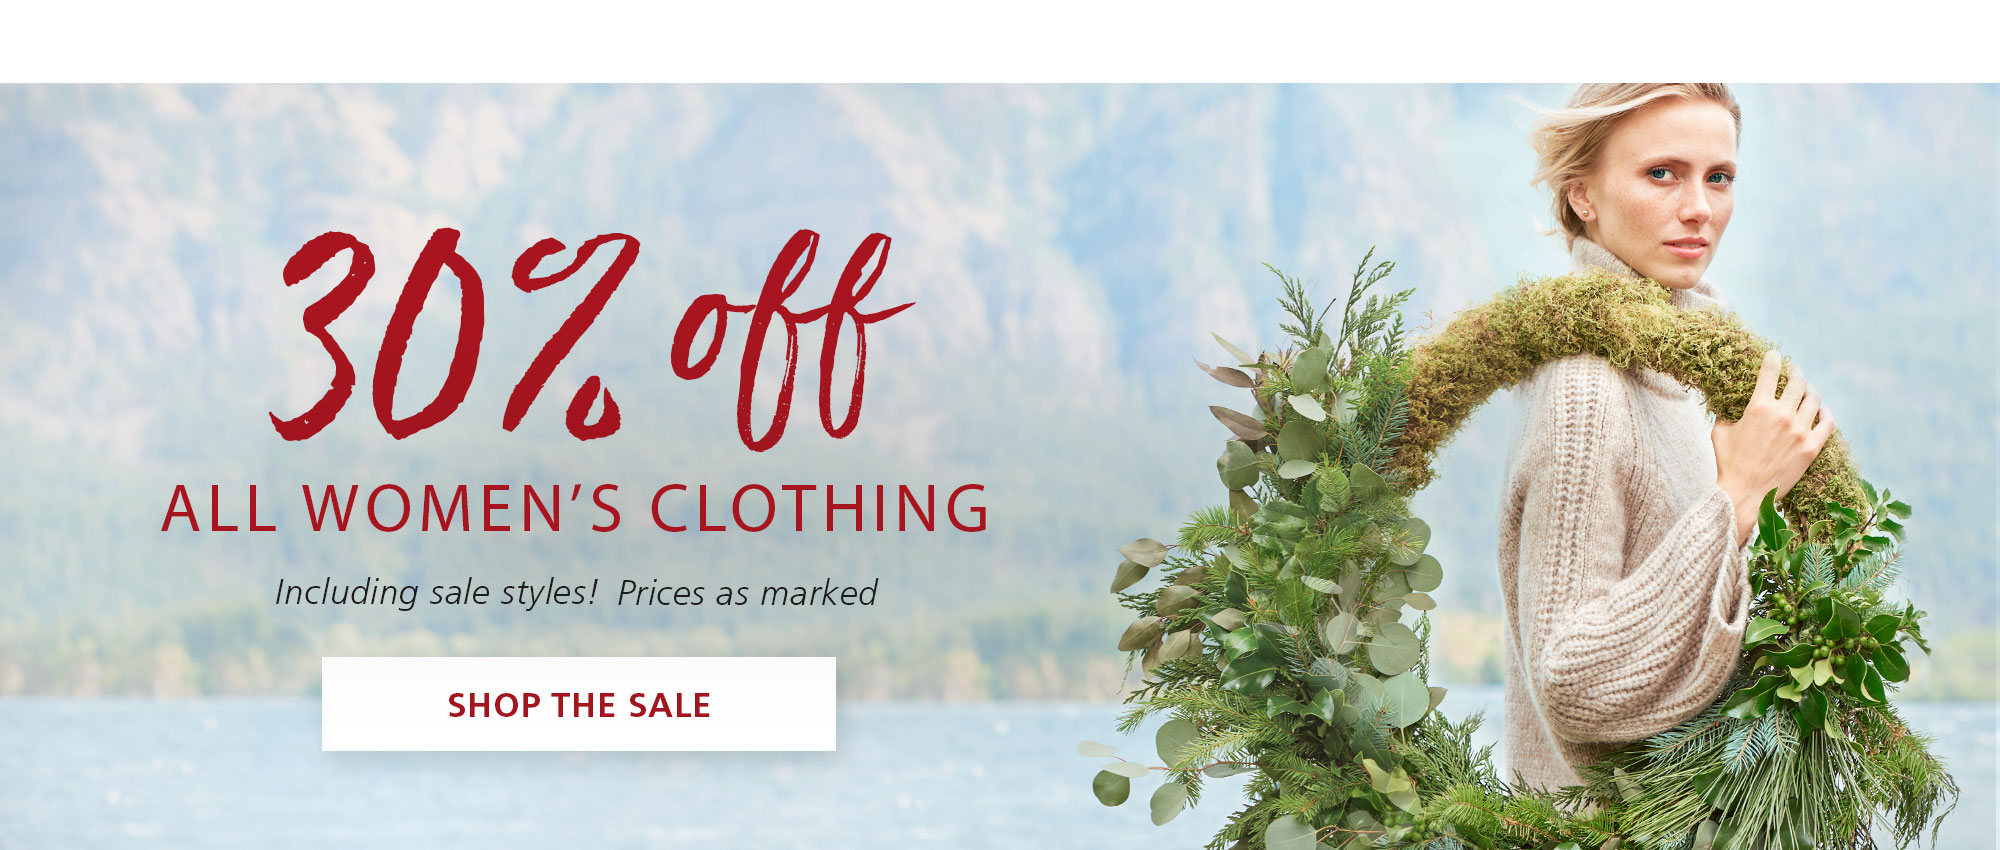 30% OFF ALL WOMEN'S CLOTHING